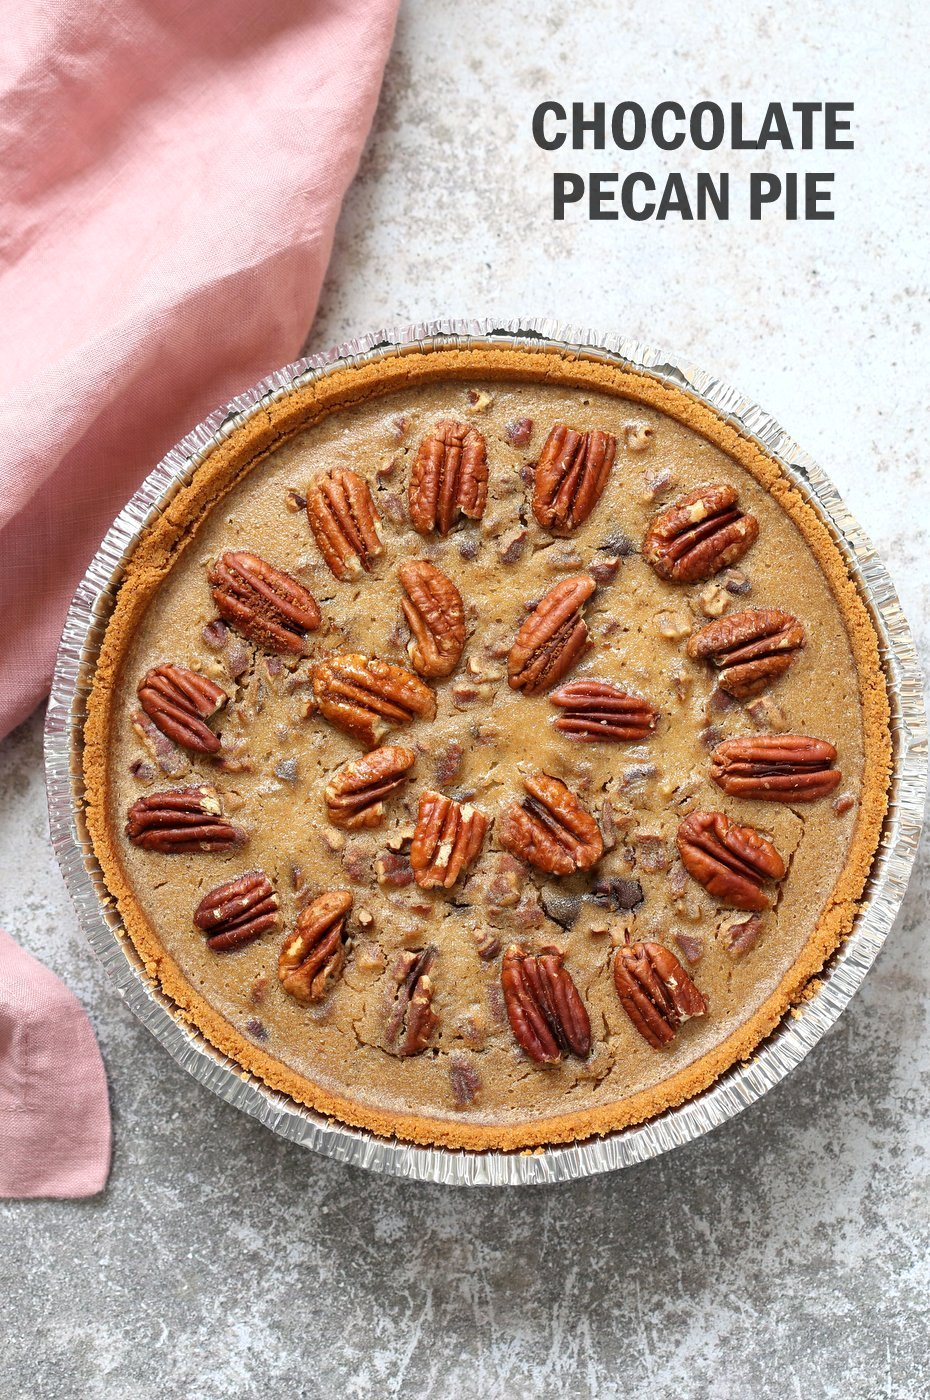 Vegan Chocolate Pecan Pie ? Glutenfree option